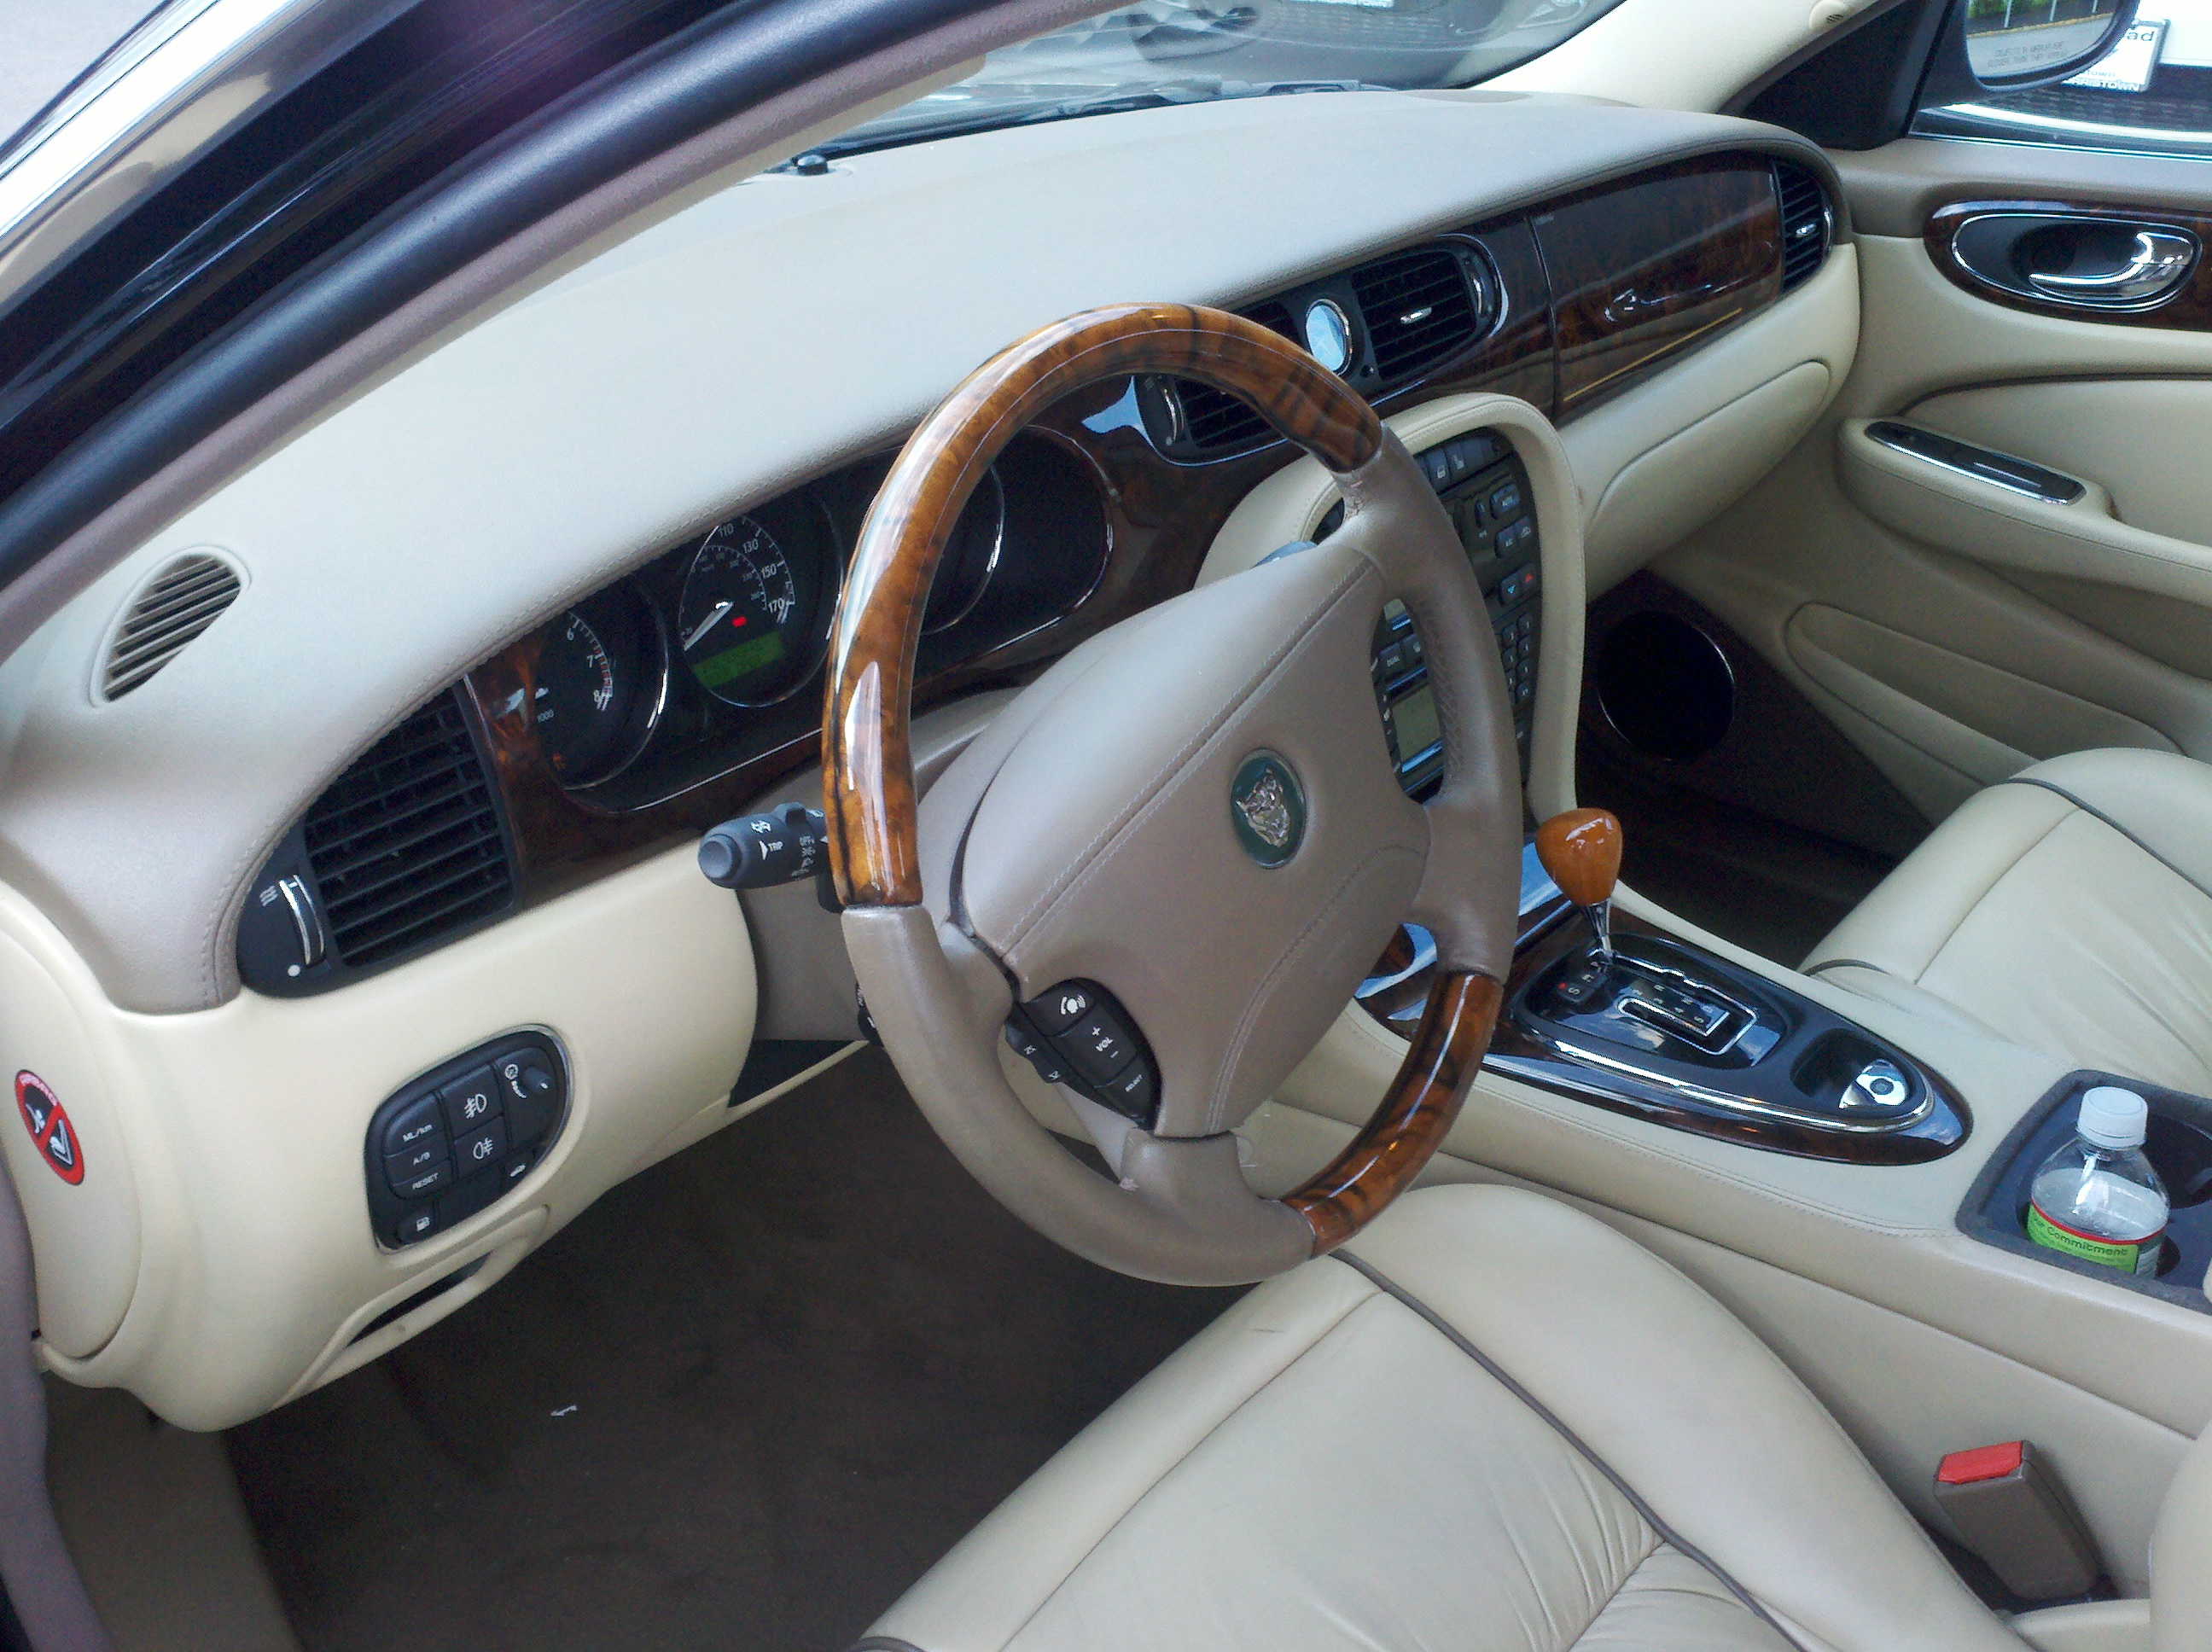 test driven 2005 jaguar xj vanden plas mind over motor rh mindovermotor com 2005 Jaguar XJ8L Problems jaguar xj8 2005 manual